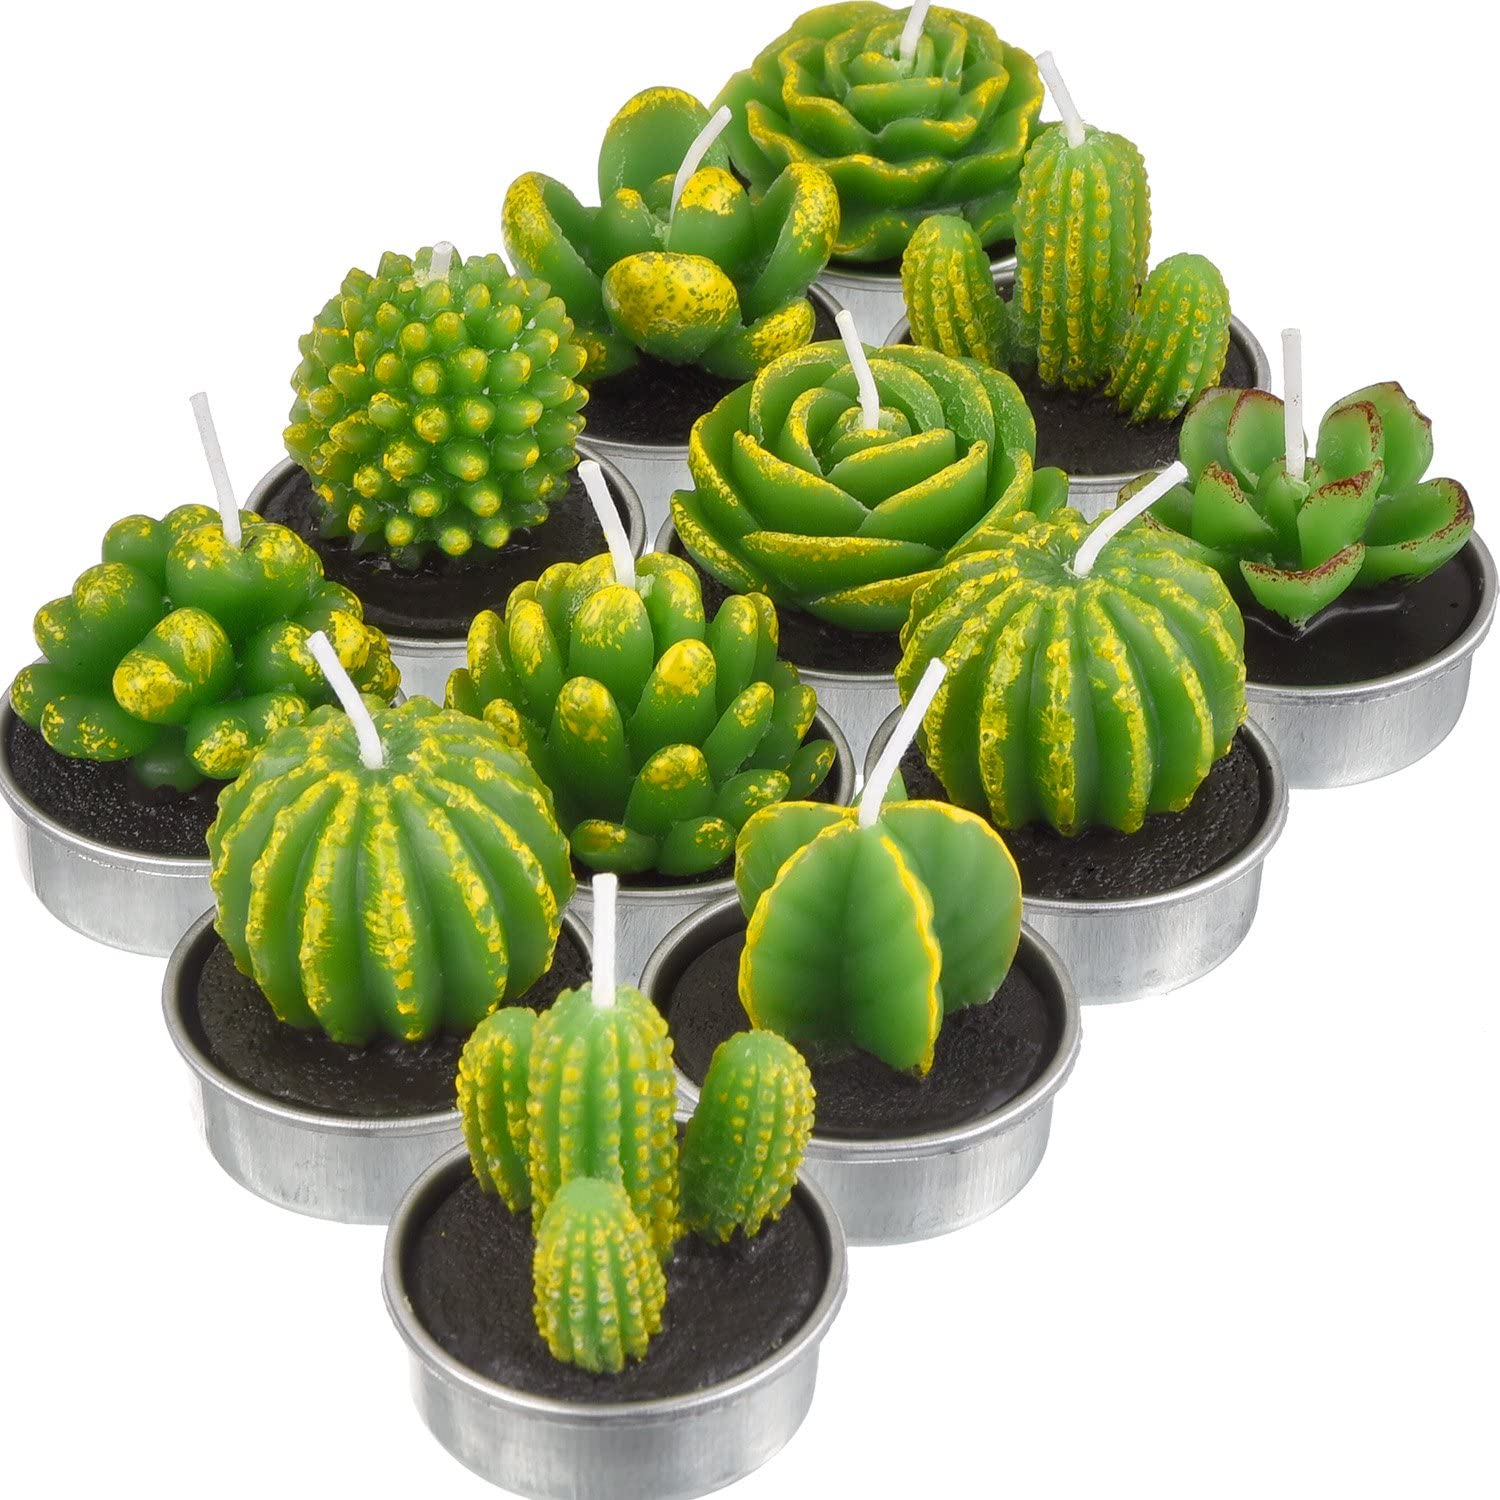 12 Pieces Cactus Tealight Candles Succulent Delicate Ca Handmade Popular product Max 45% OFF